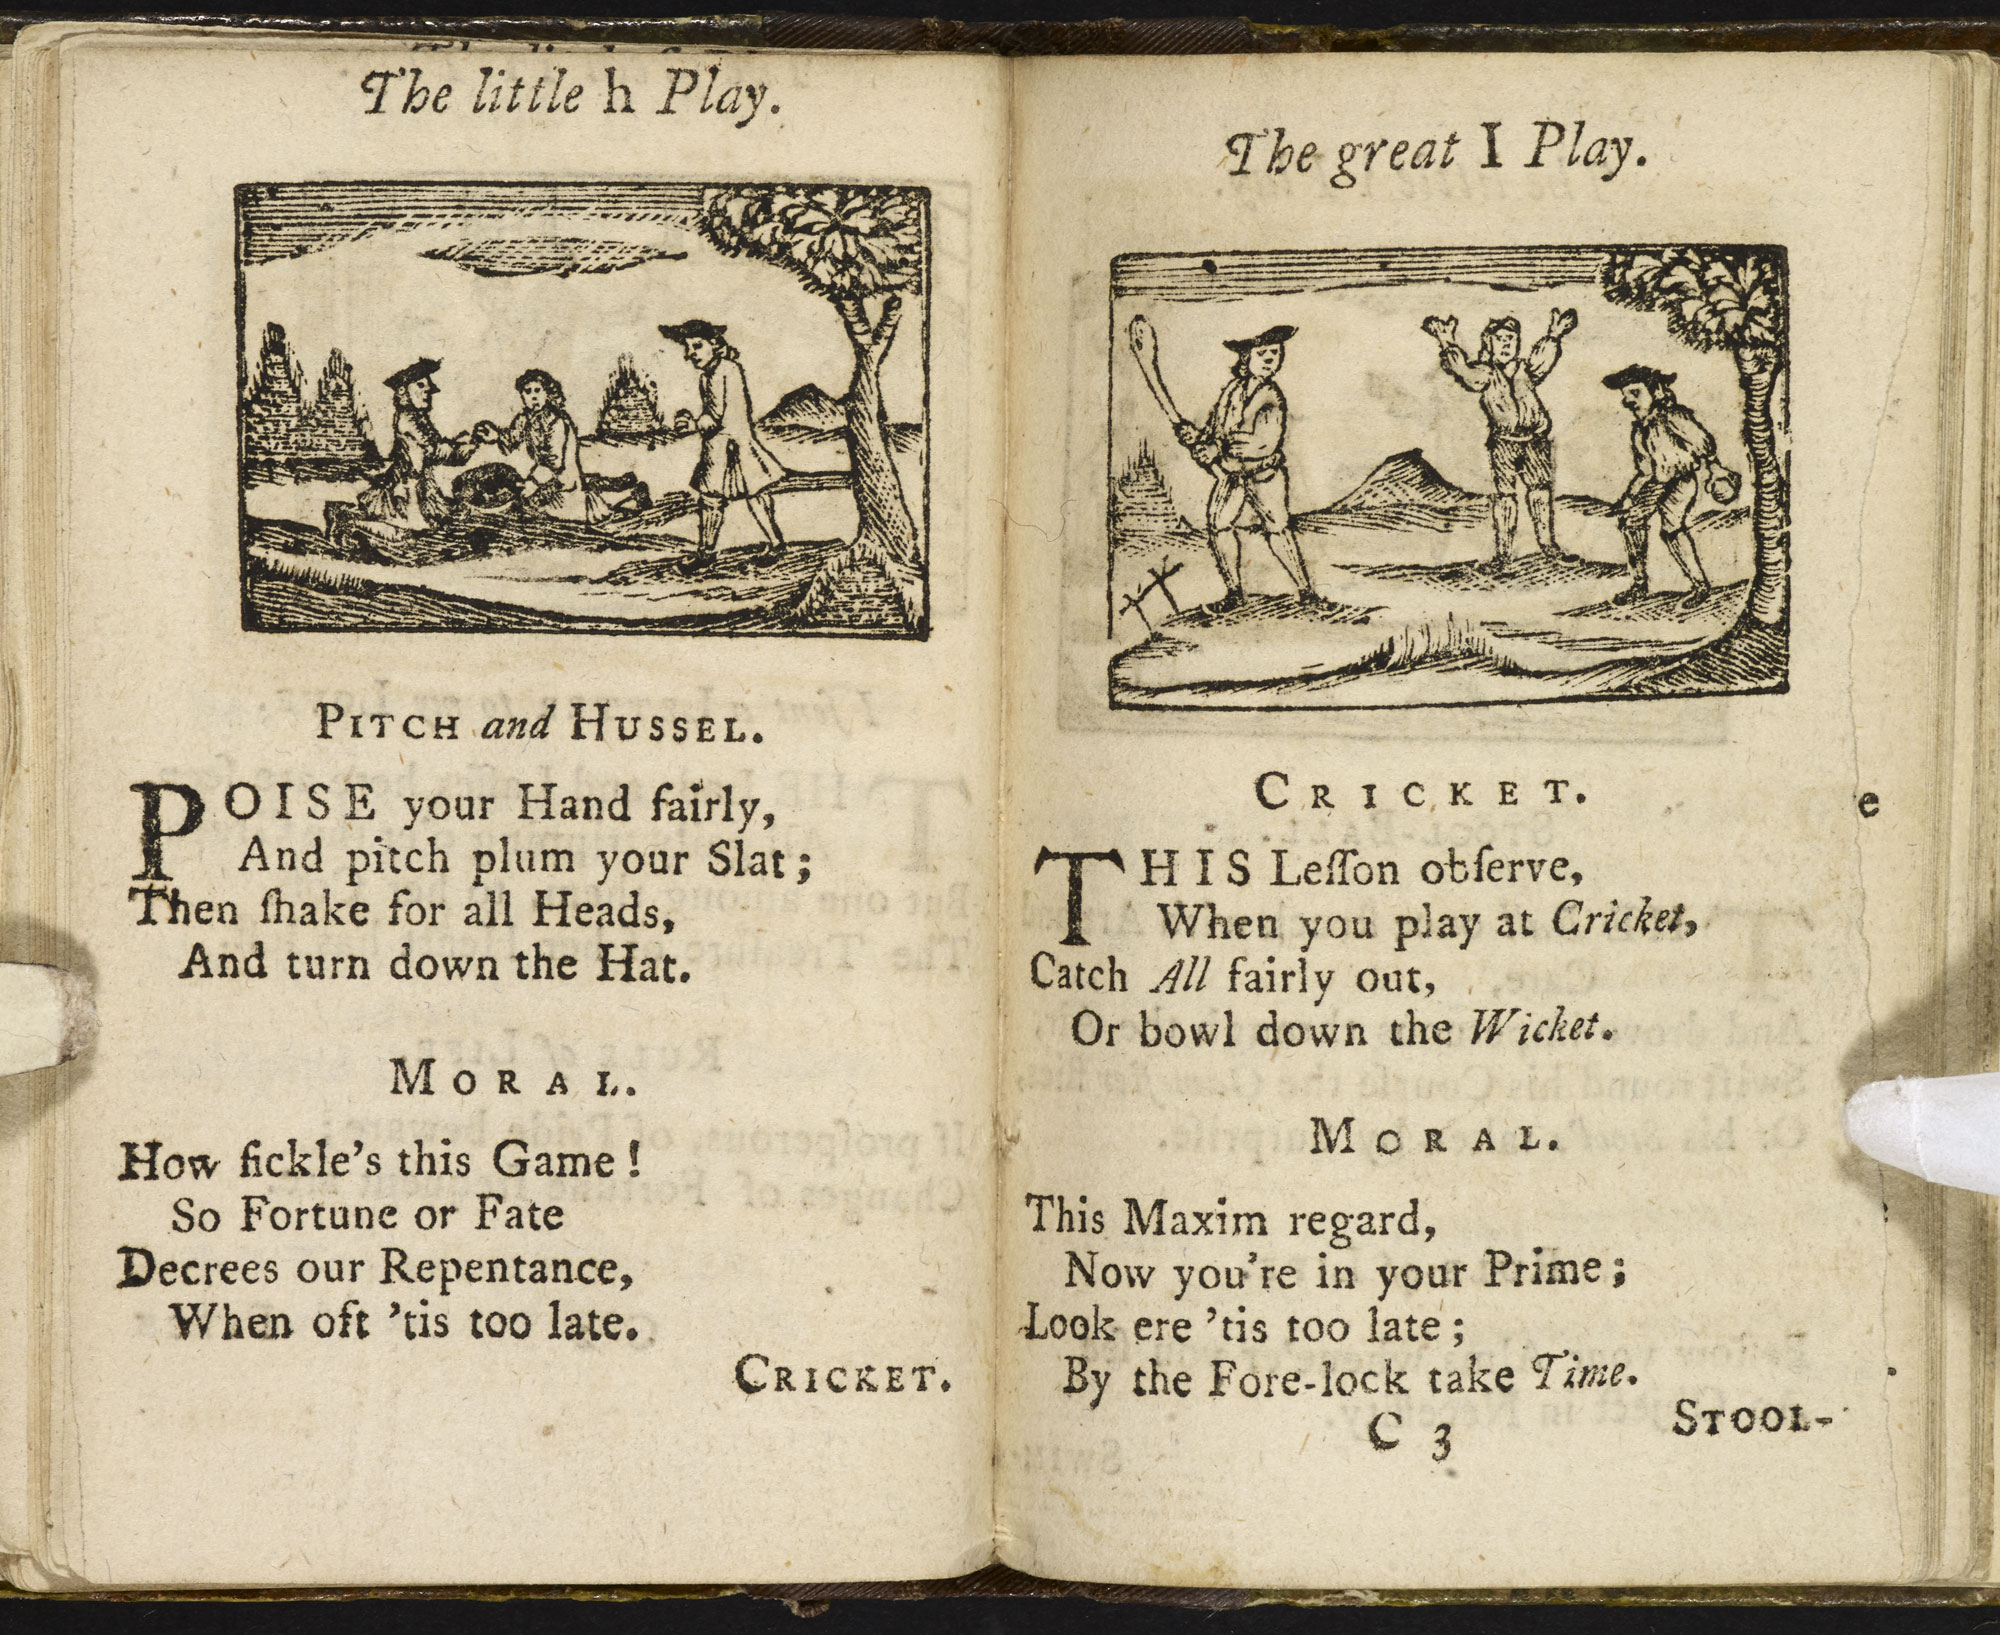 A Pretty Little Pocket Book [page: ['The little h Play'] and ['The great I Play']]